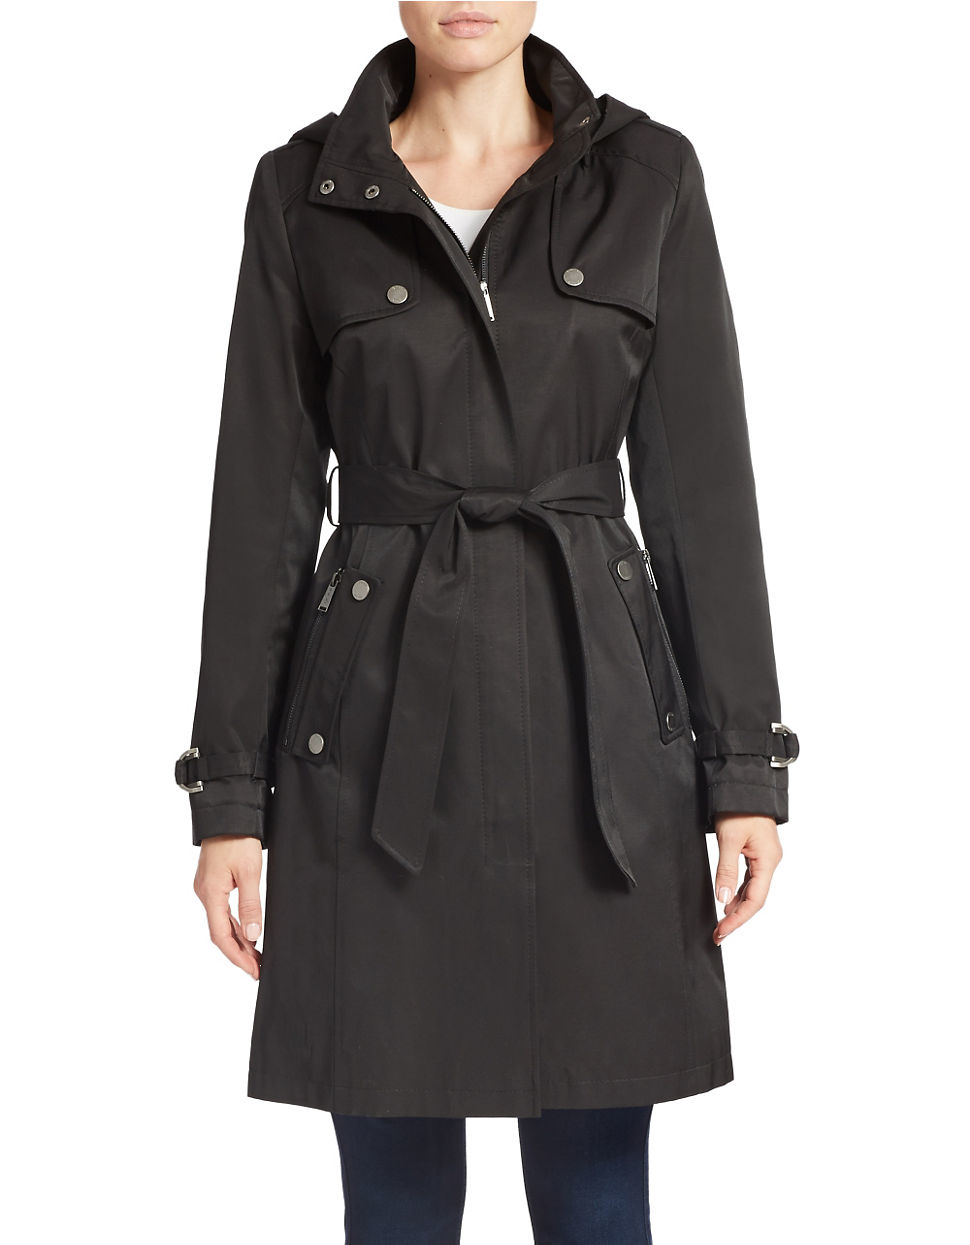 Women's Black Trench Coats. Clothing. Women. Womens Coats & Jackets. Women's Black Trench Coats. Showing 48 of 90 results that match your query. Search Product Result. Product - Plus Size Womens Autumn Fall Winter Outwear Long Trench Coat Overcoat Jackets .